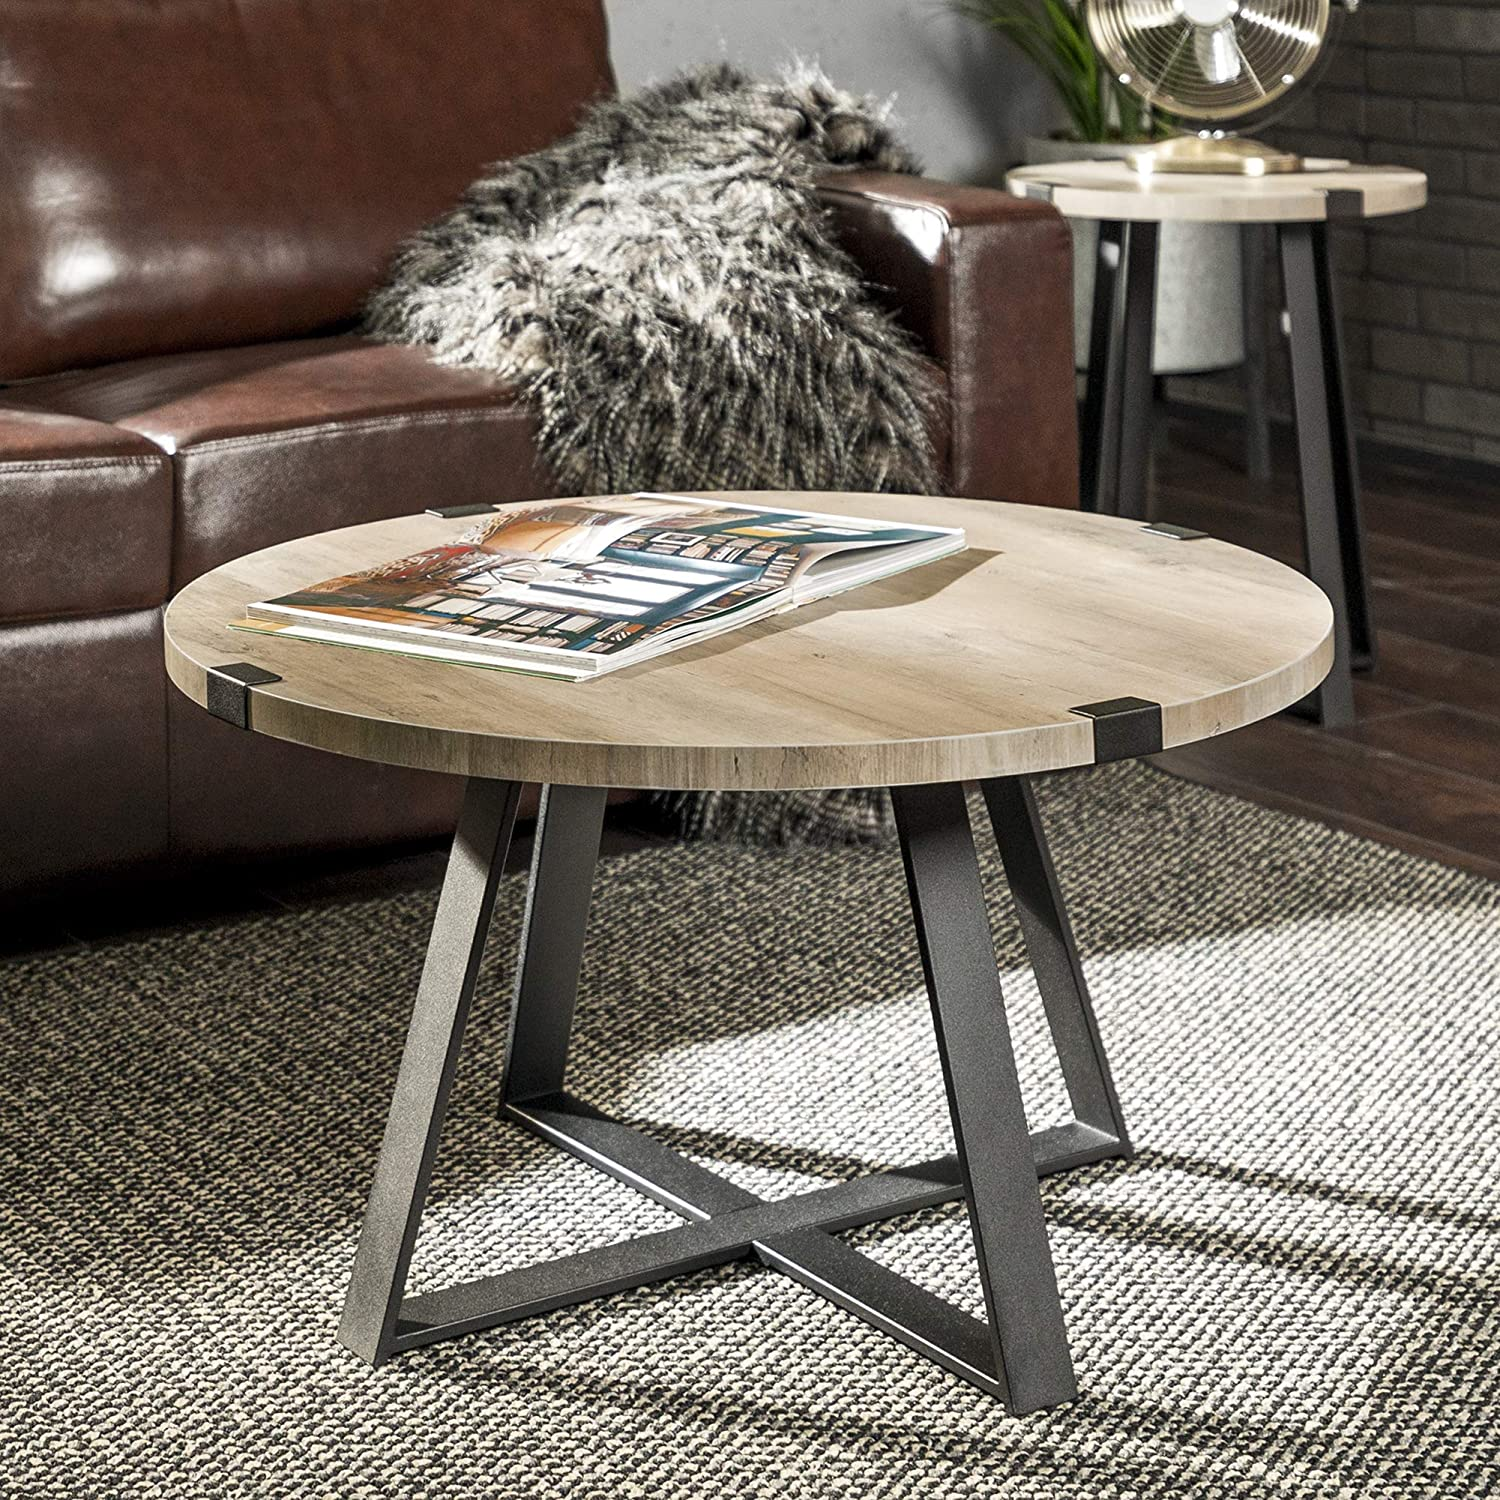 Rustic Farmhouse Round Metal Coffee Accent Table